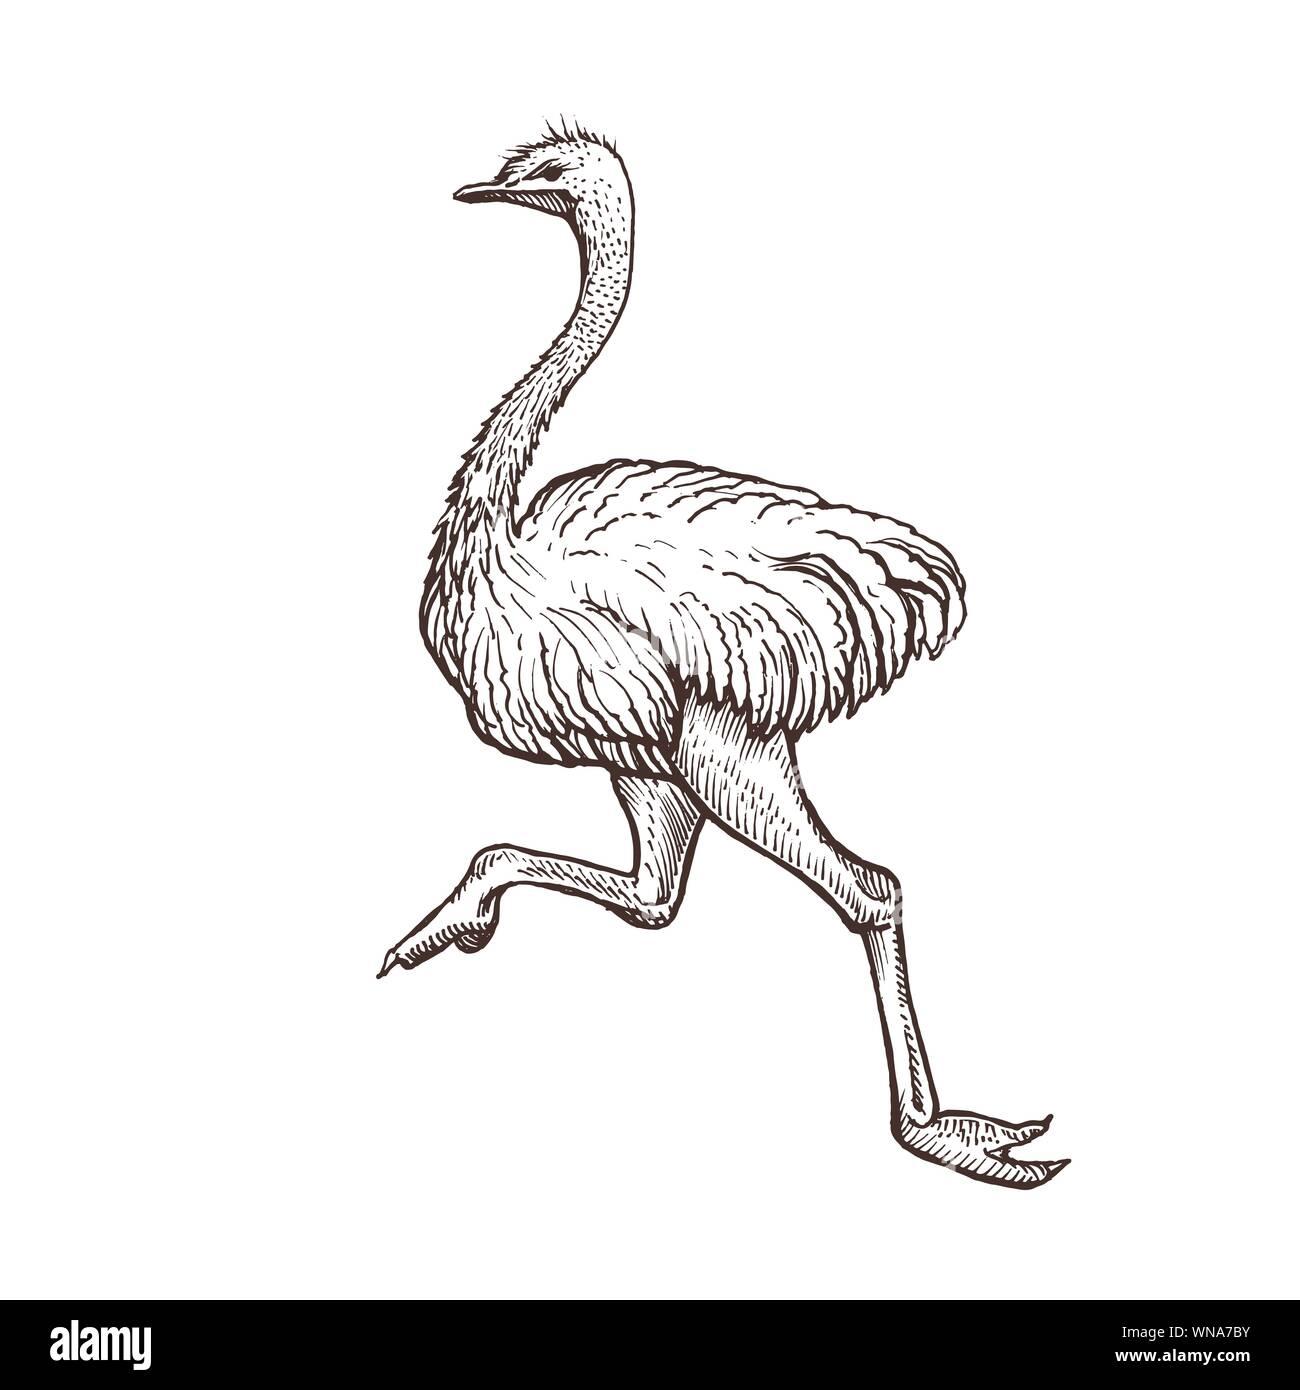 Ostrich bird, farm animal sketch, isolated running ostrich on the white background. Vintage style. Vector illustration. Stock Vector